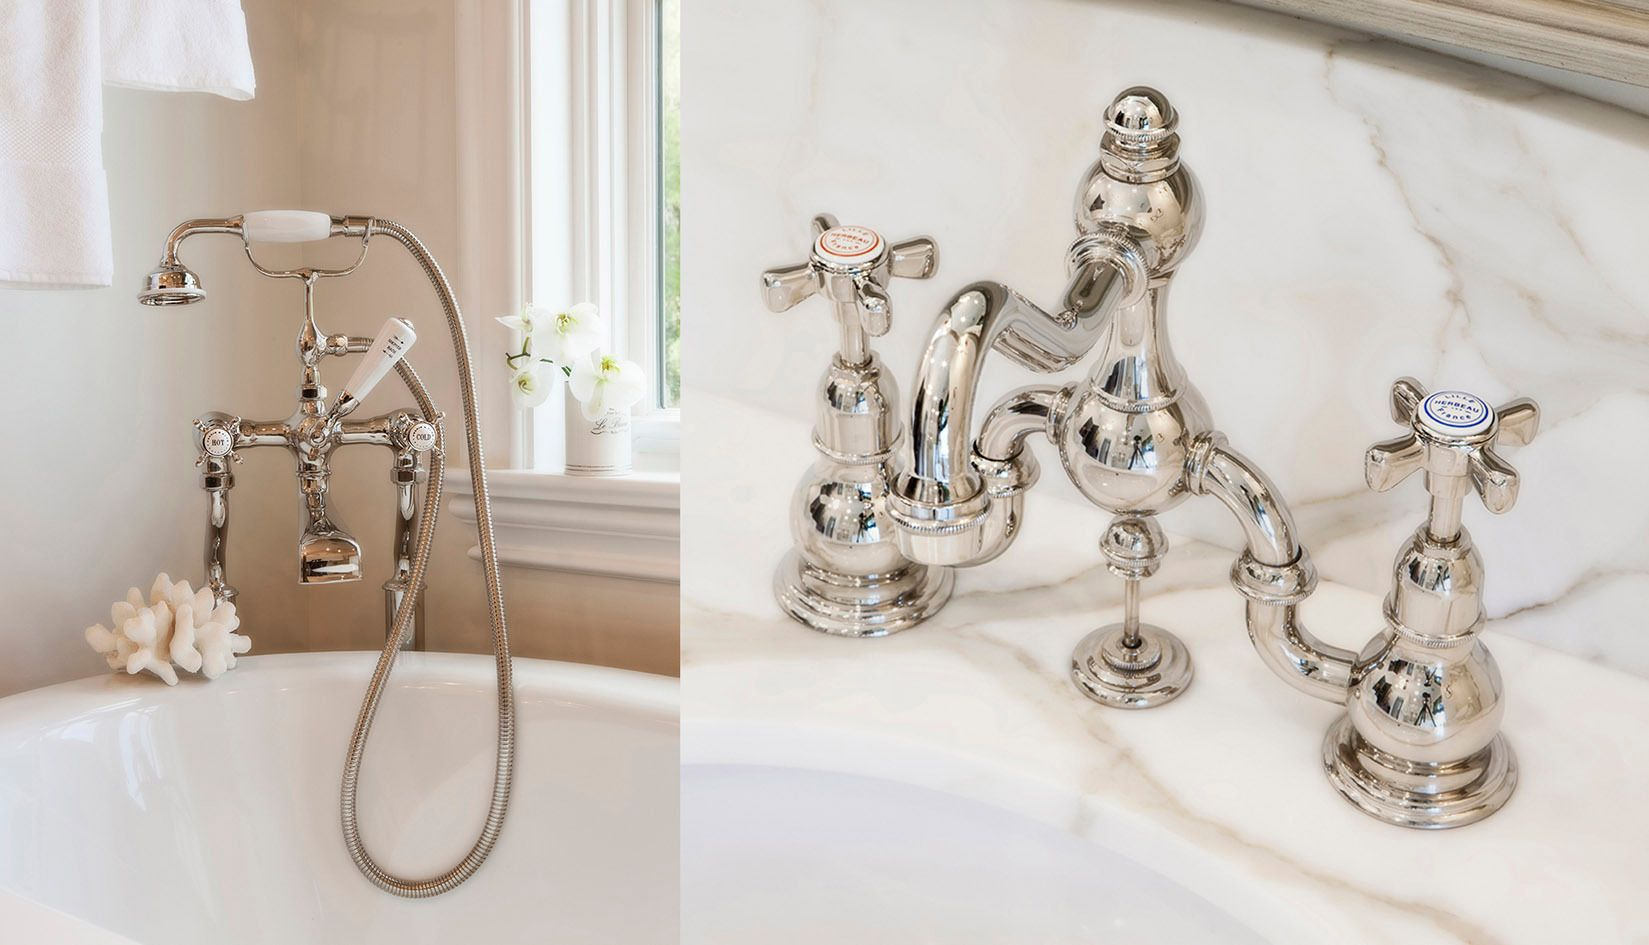 1r1650_combo_fairoaks_bathfaucets